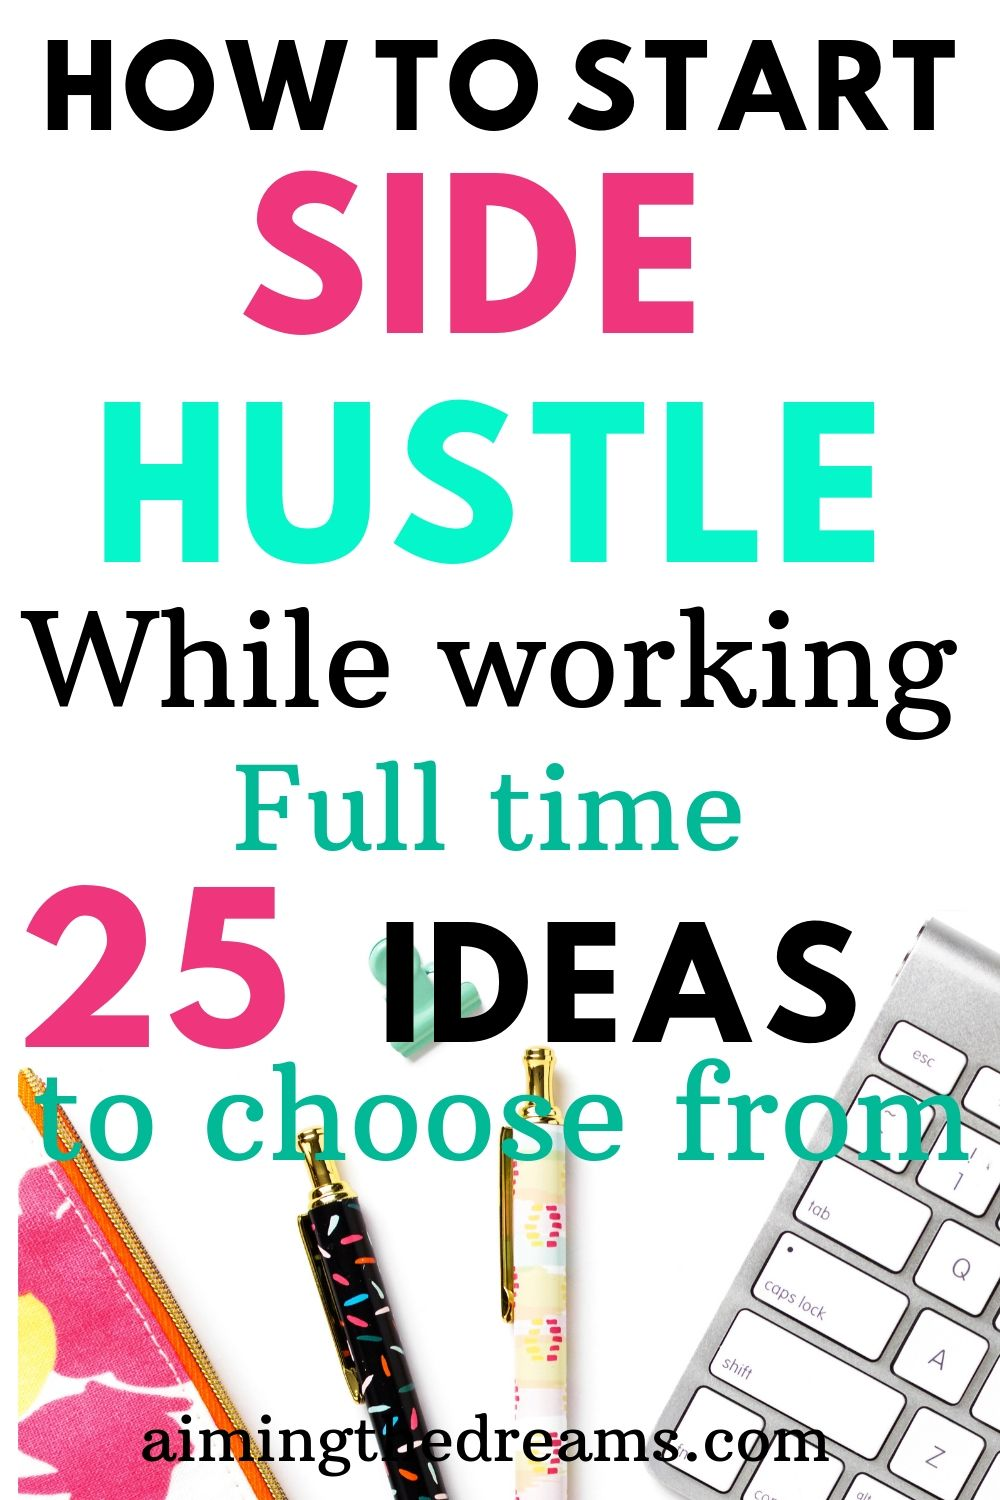 How to start a side hustle while working full time